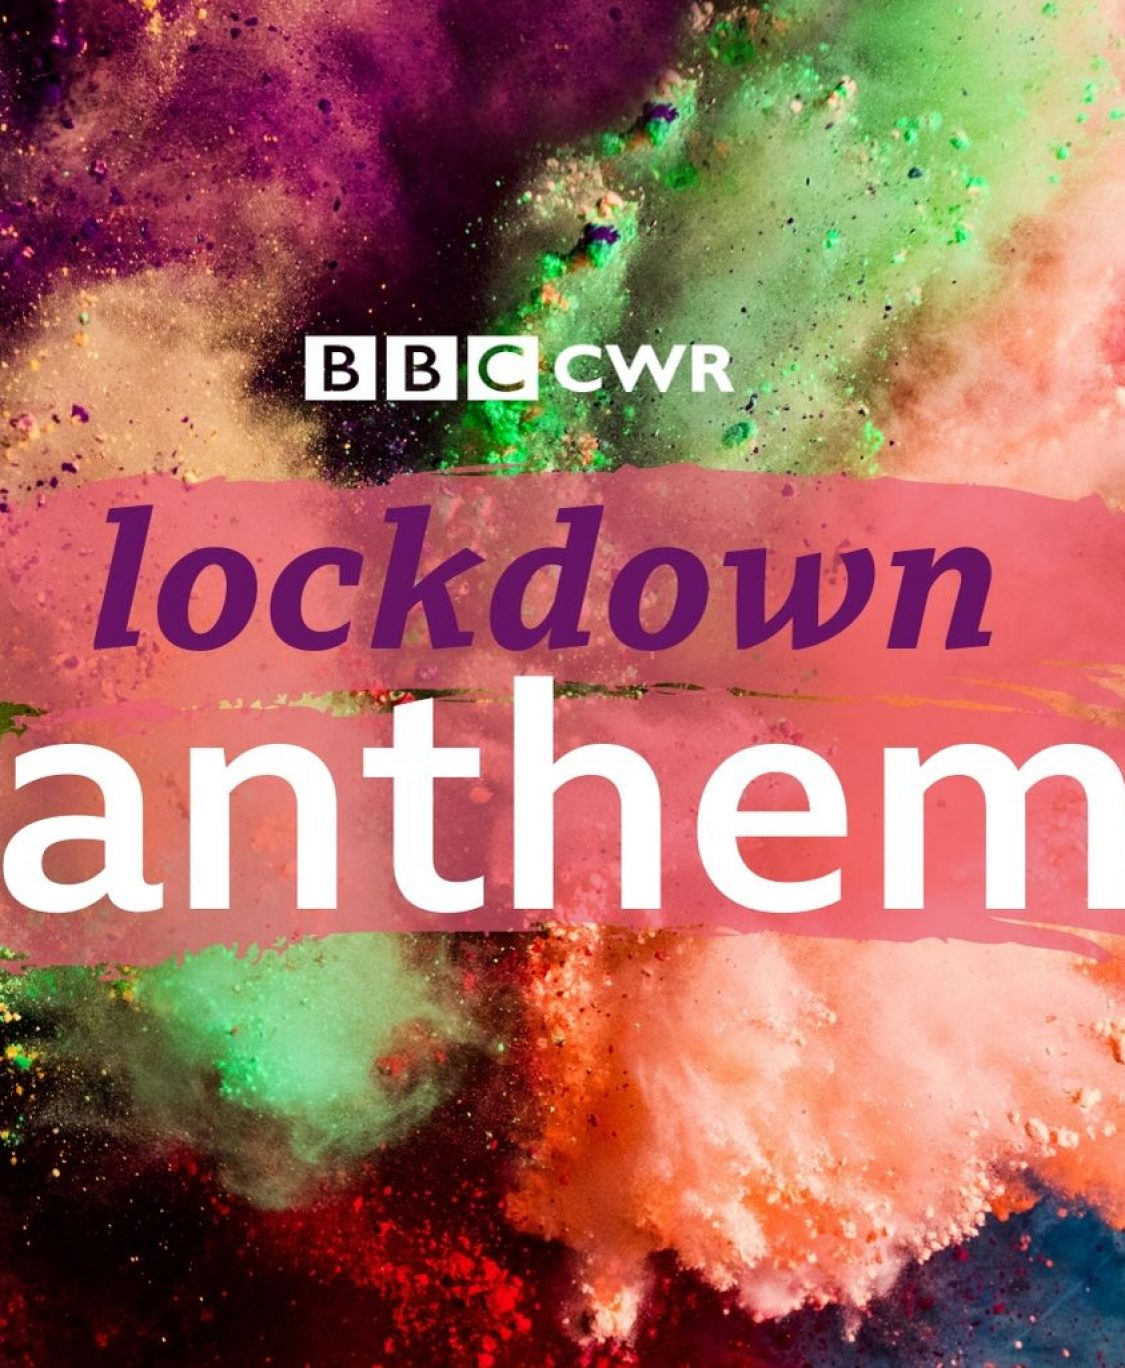 Saturday Shout Out: Join BBC CWR's Lockdown Anthem